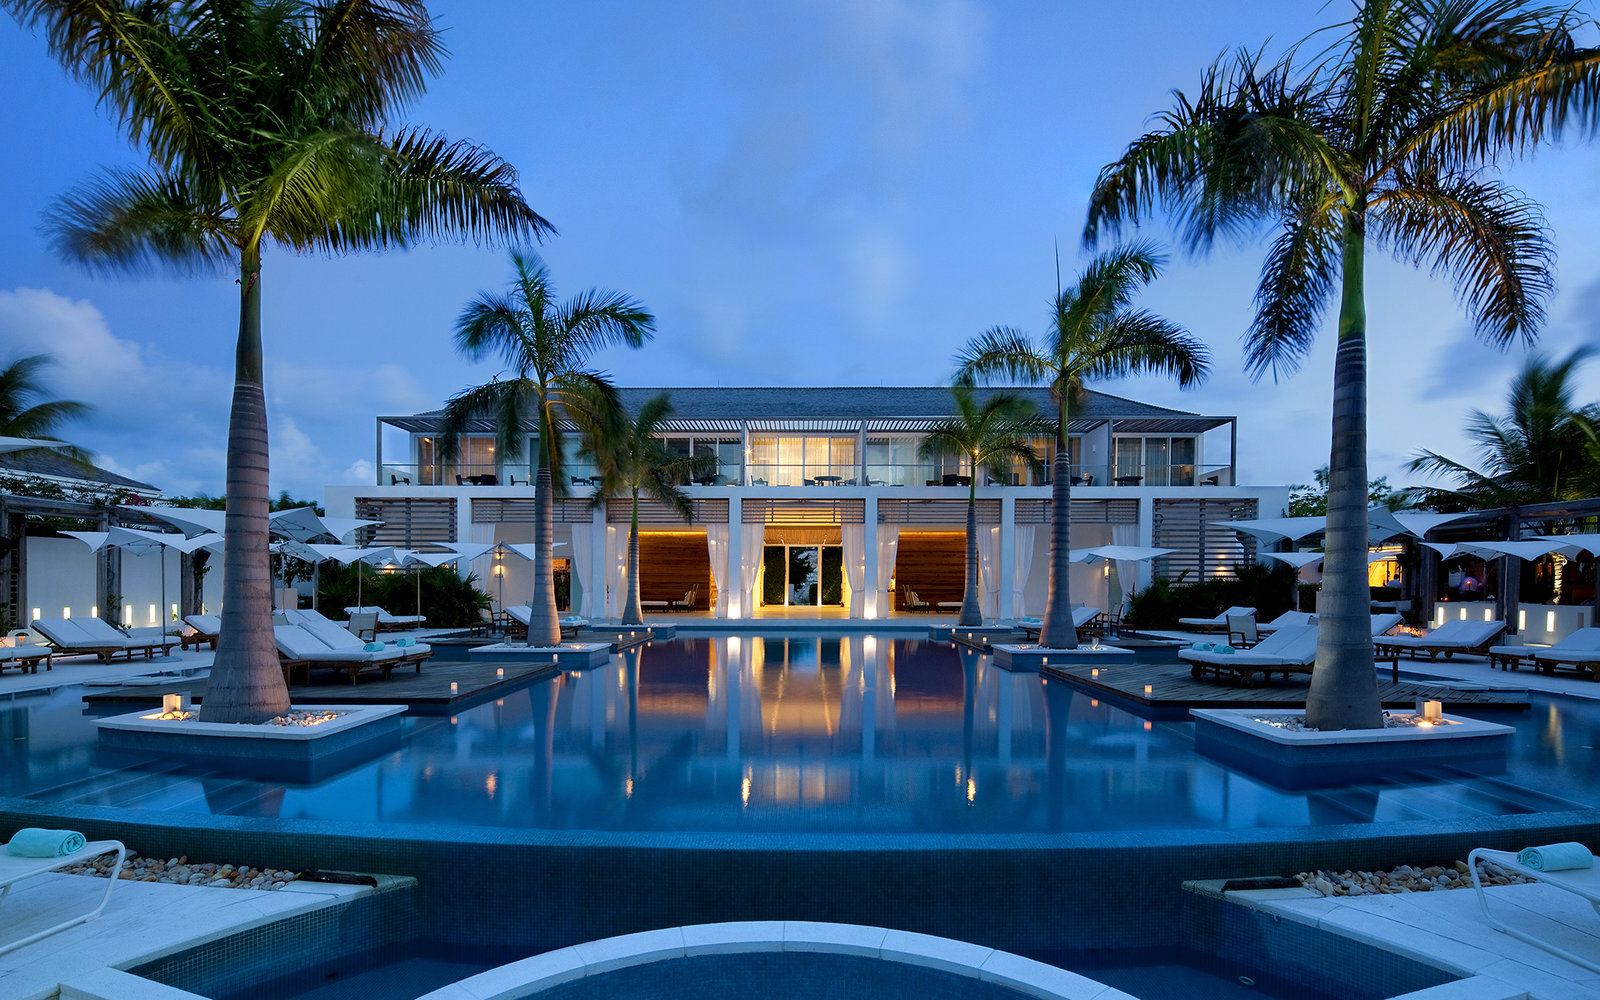 Gansevoort turks and caicos travel leisure for All inclusive hotels turks and caicos